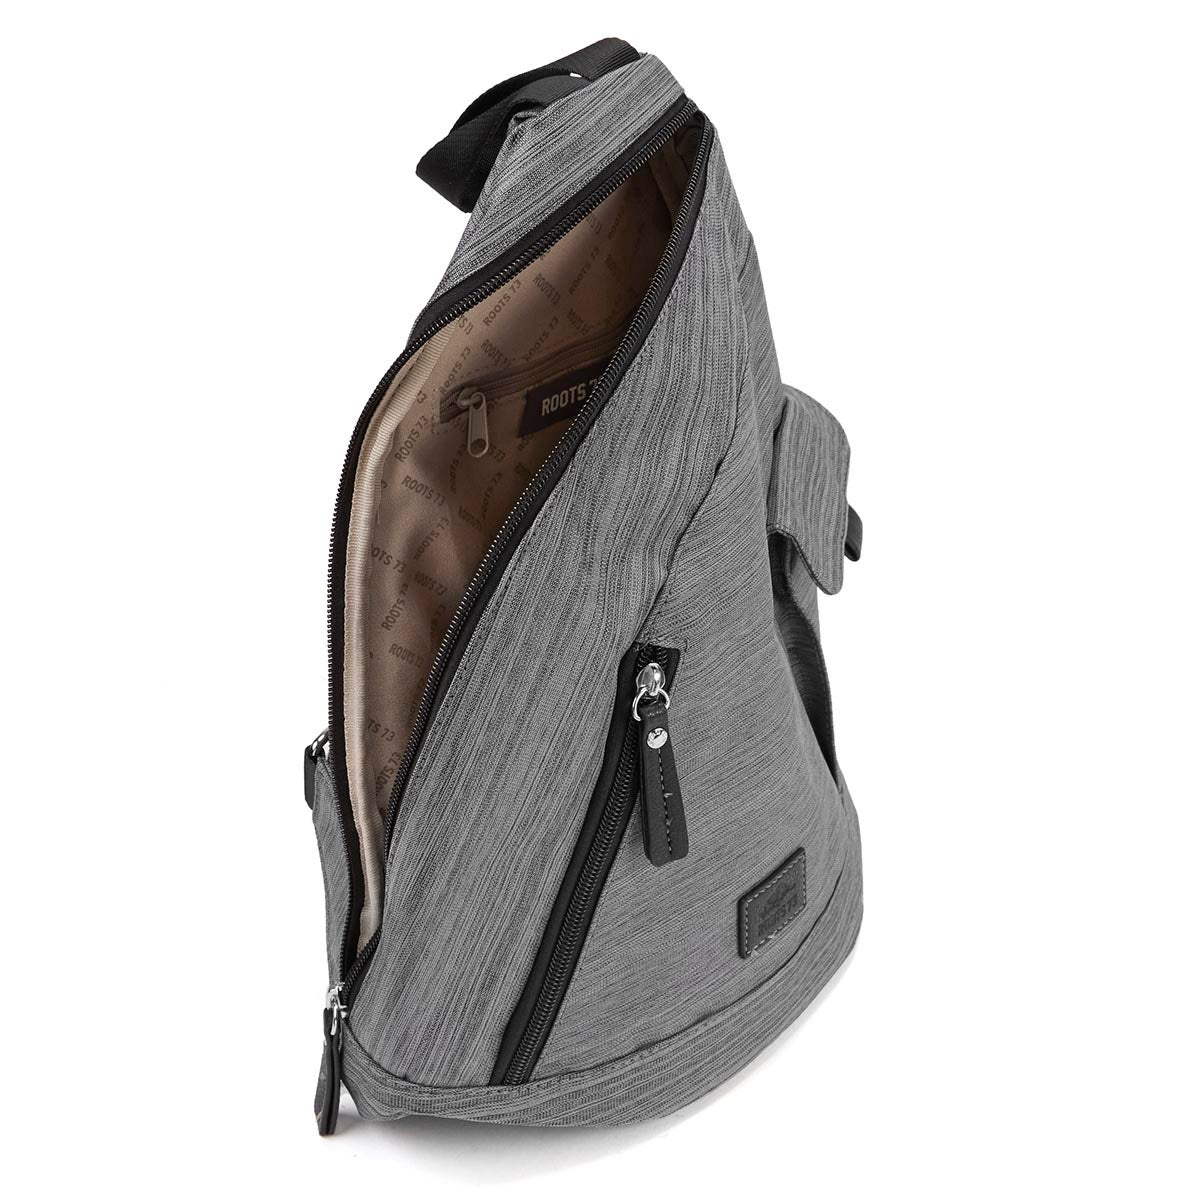 Roots grey textured sling backpack